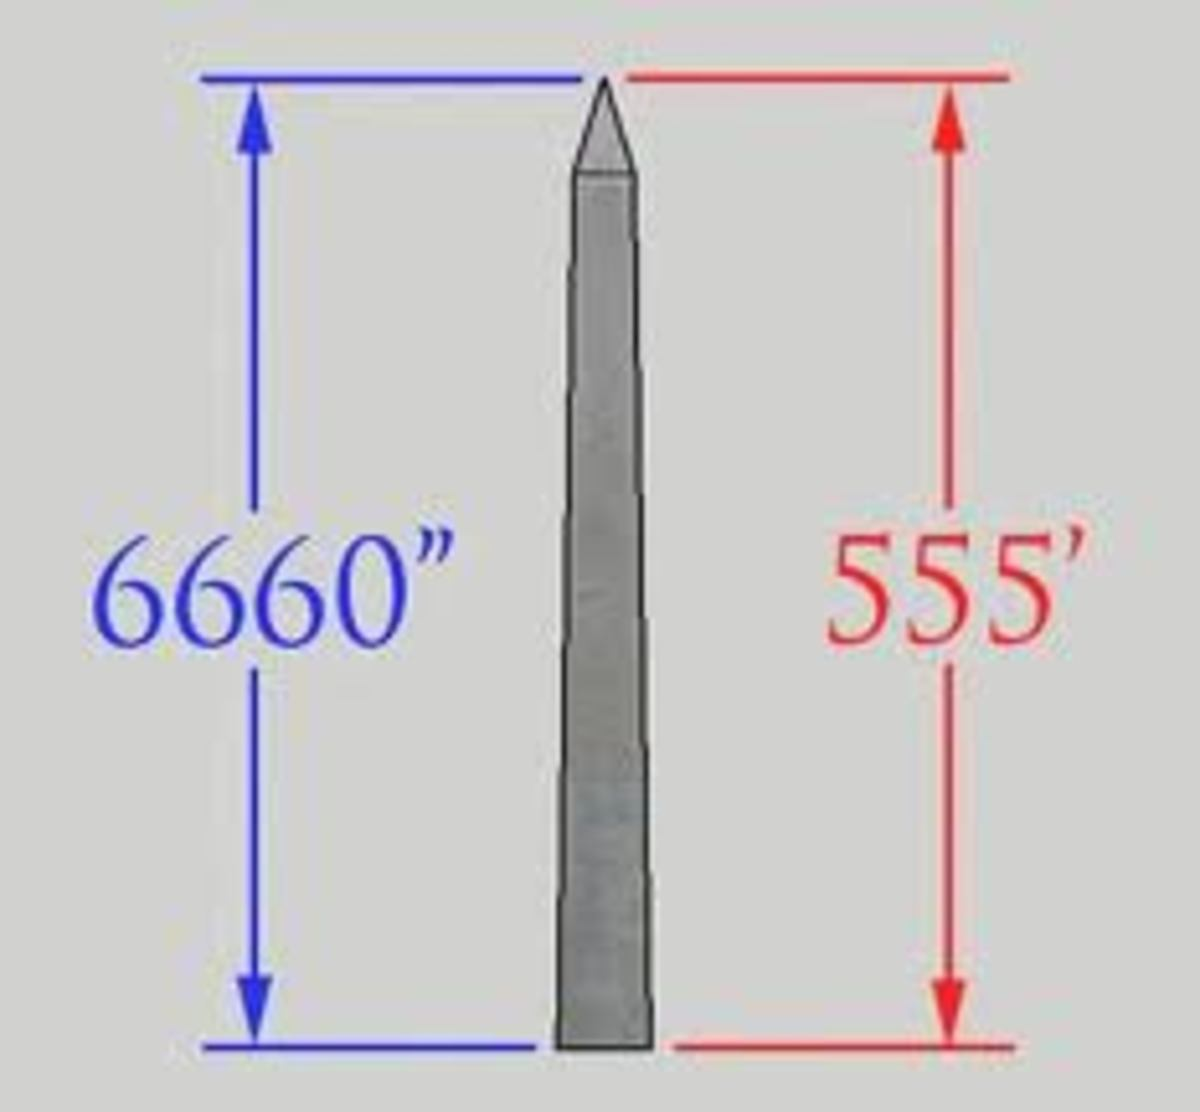 The Monument is also 111' under the ground, making the full construction height 666'.